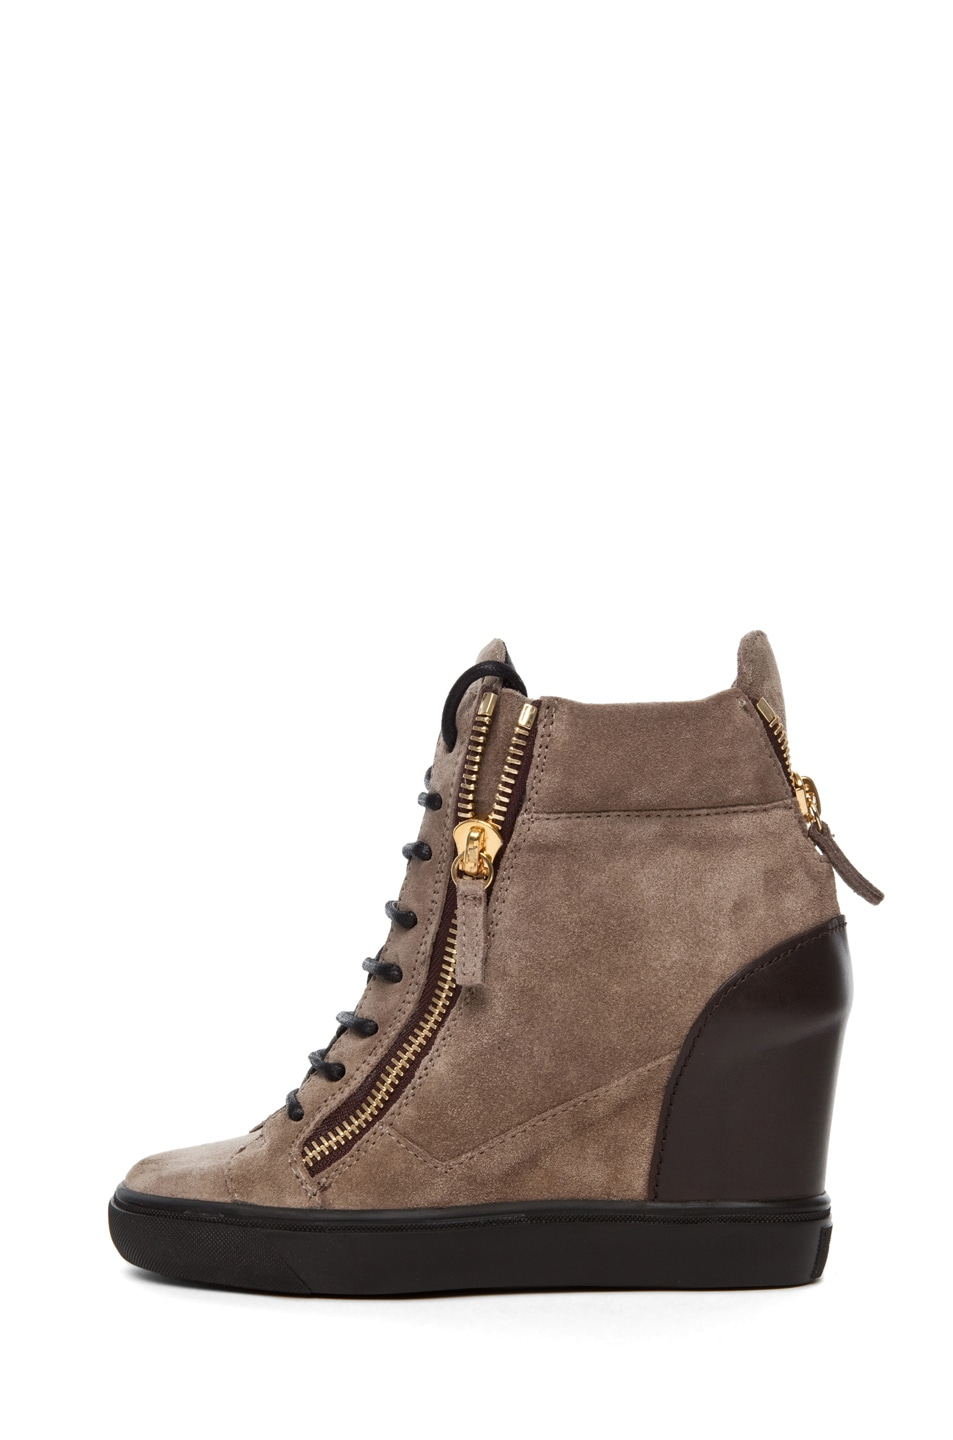 Image 1 of Giuseppe Zanotti Suede & Leather Wedge Sneakers in Taupe